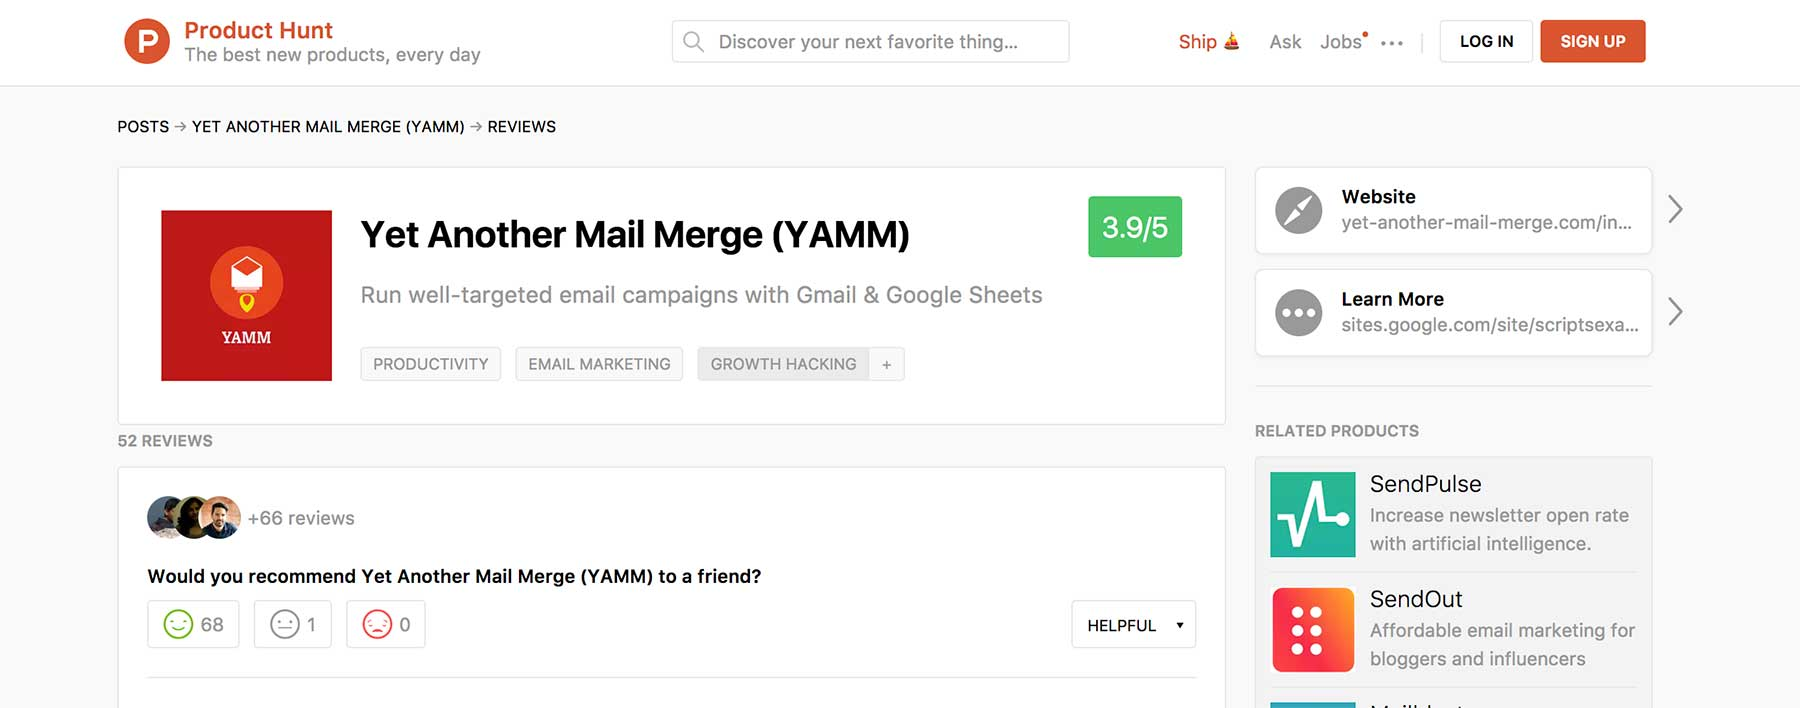 Yet Another Mail Merge on Product Hunt